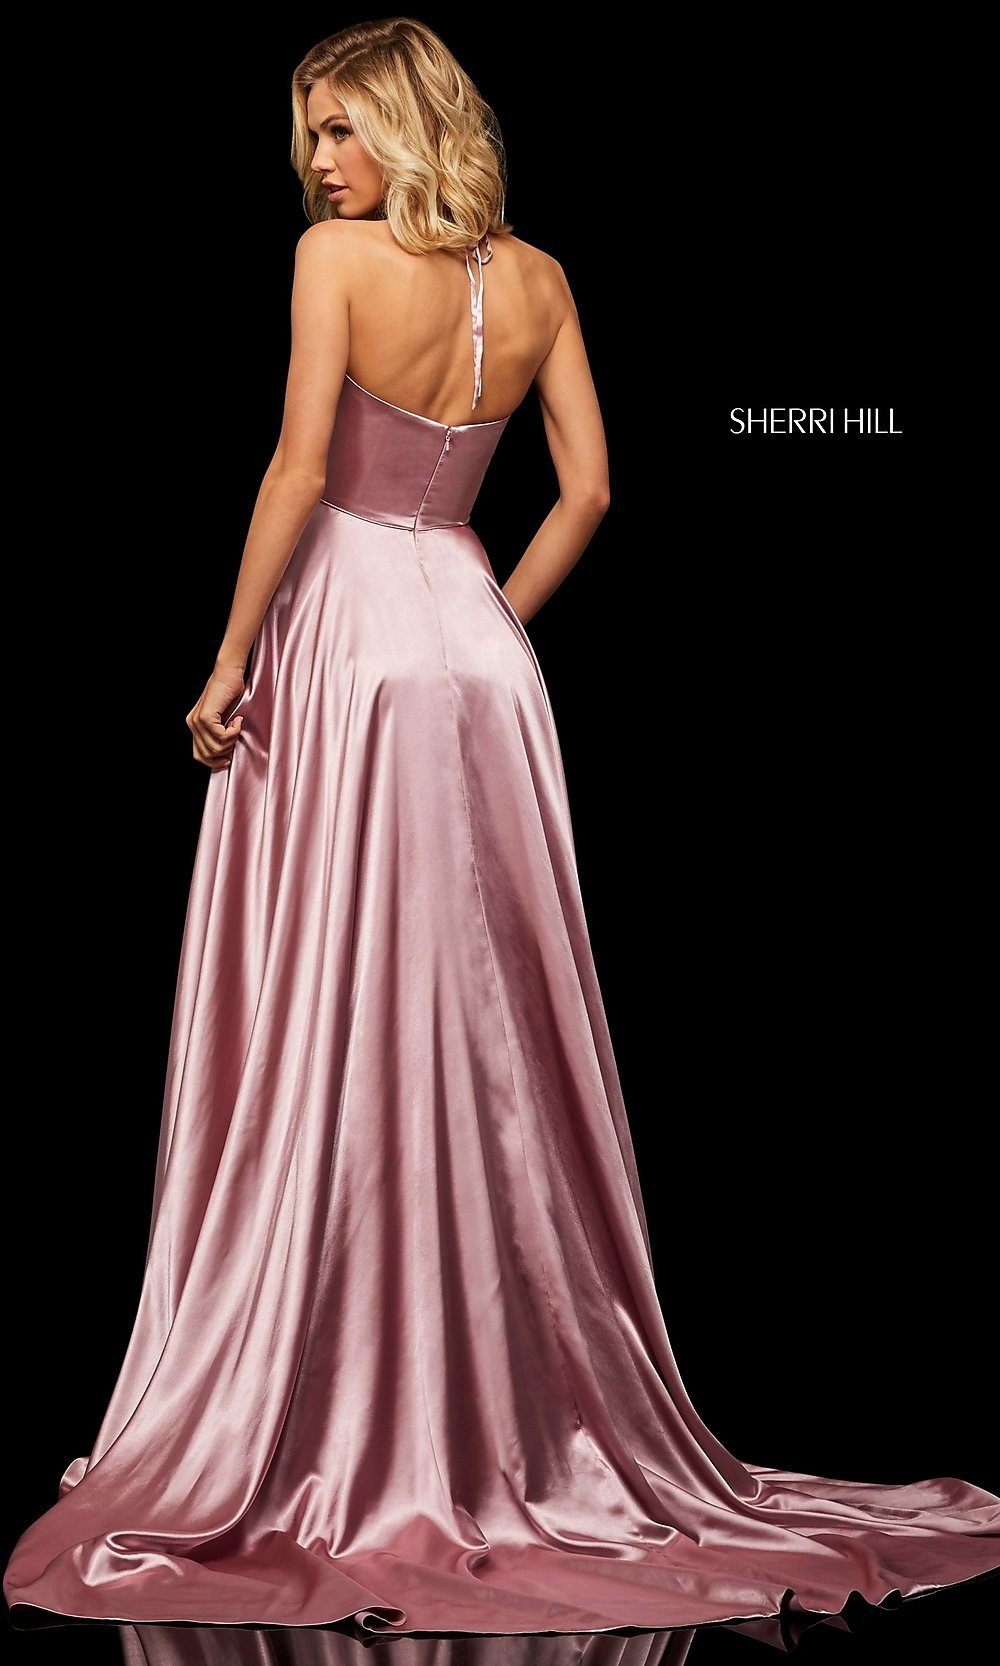 3a9d15ec0af13 ... Sherri Hill halter prom dress with pockets. Style: SH-52921. Tap to  expand